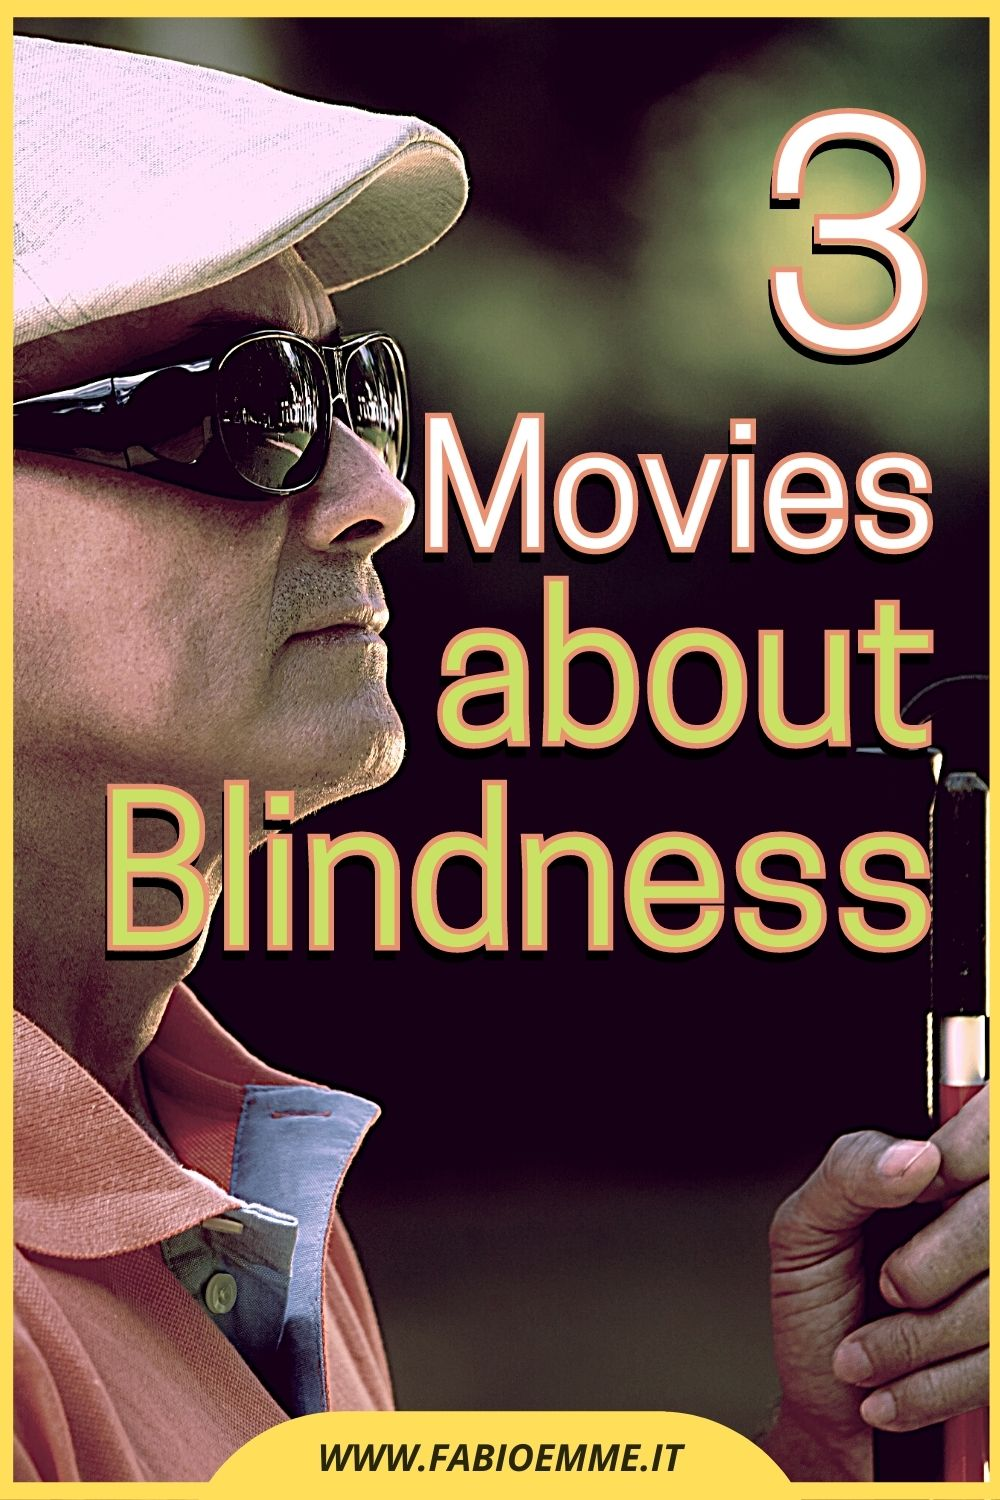 3 Movies about Blindness